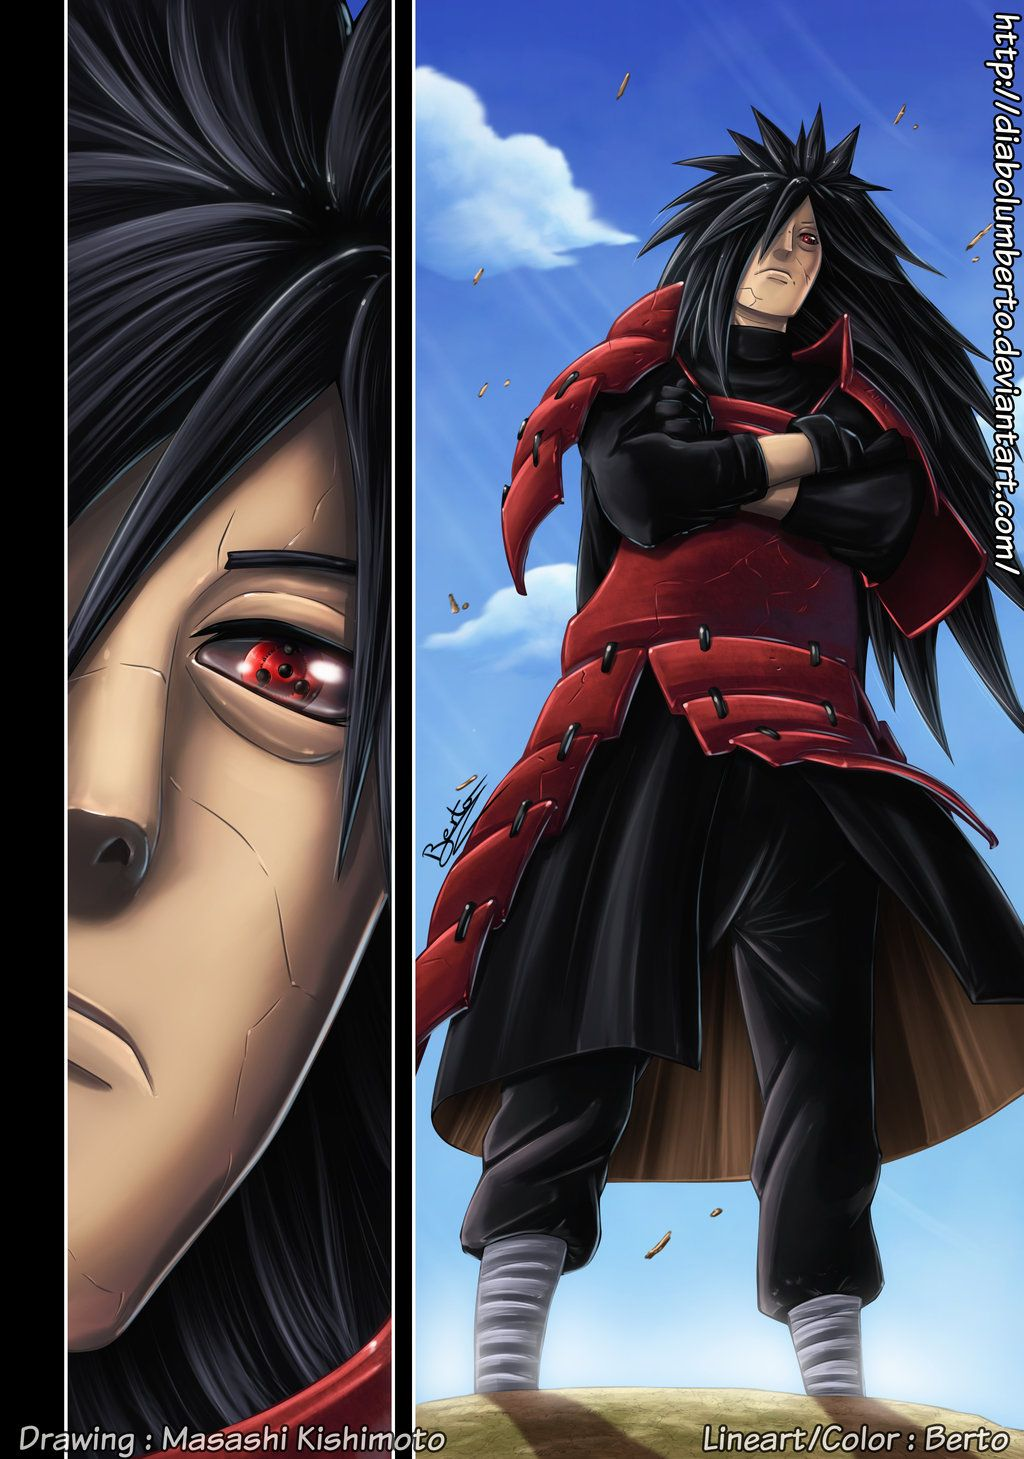 Download Wallpaper x Madara uchiha Uchiha madara Naruto